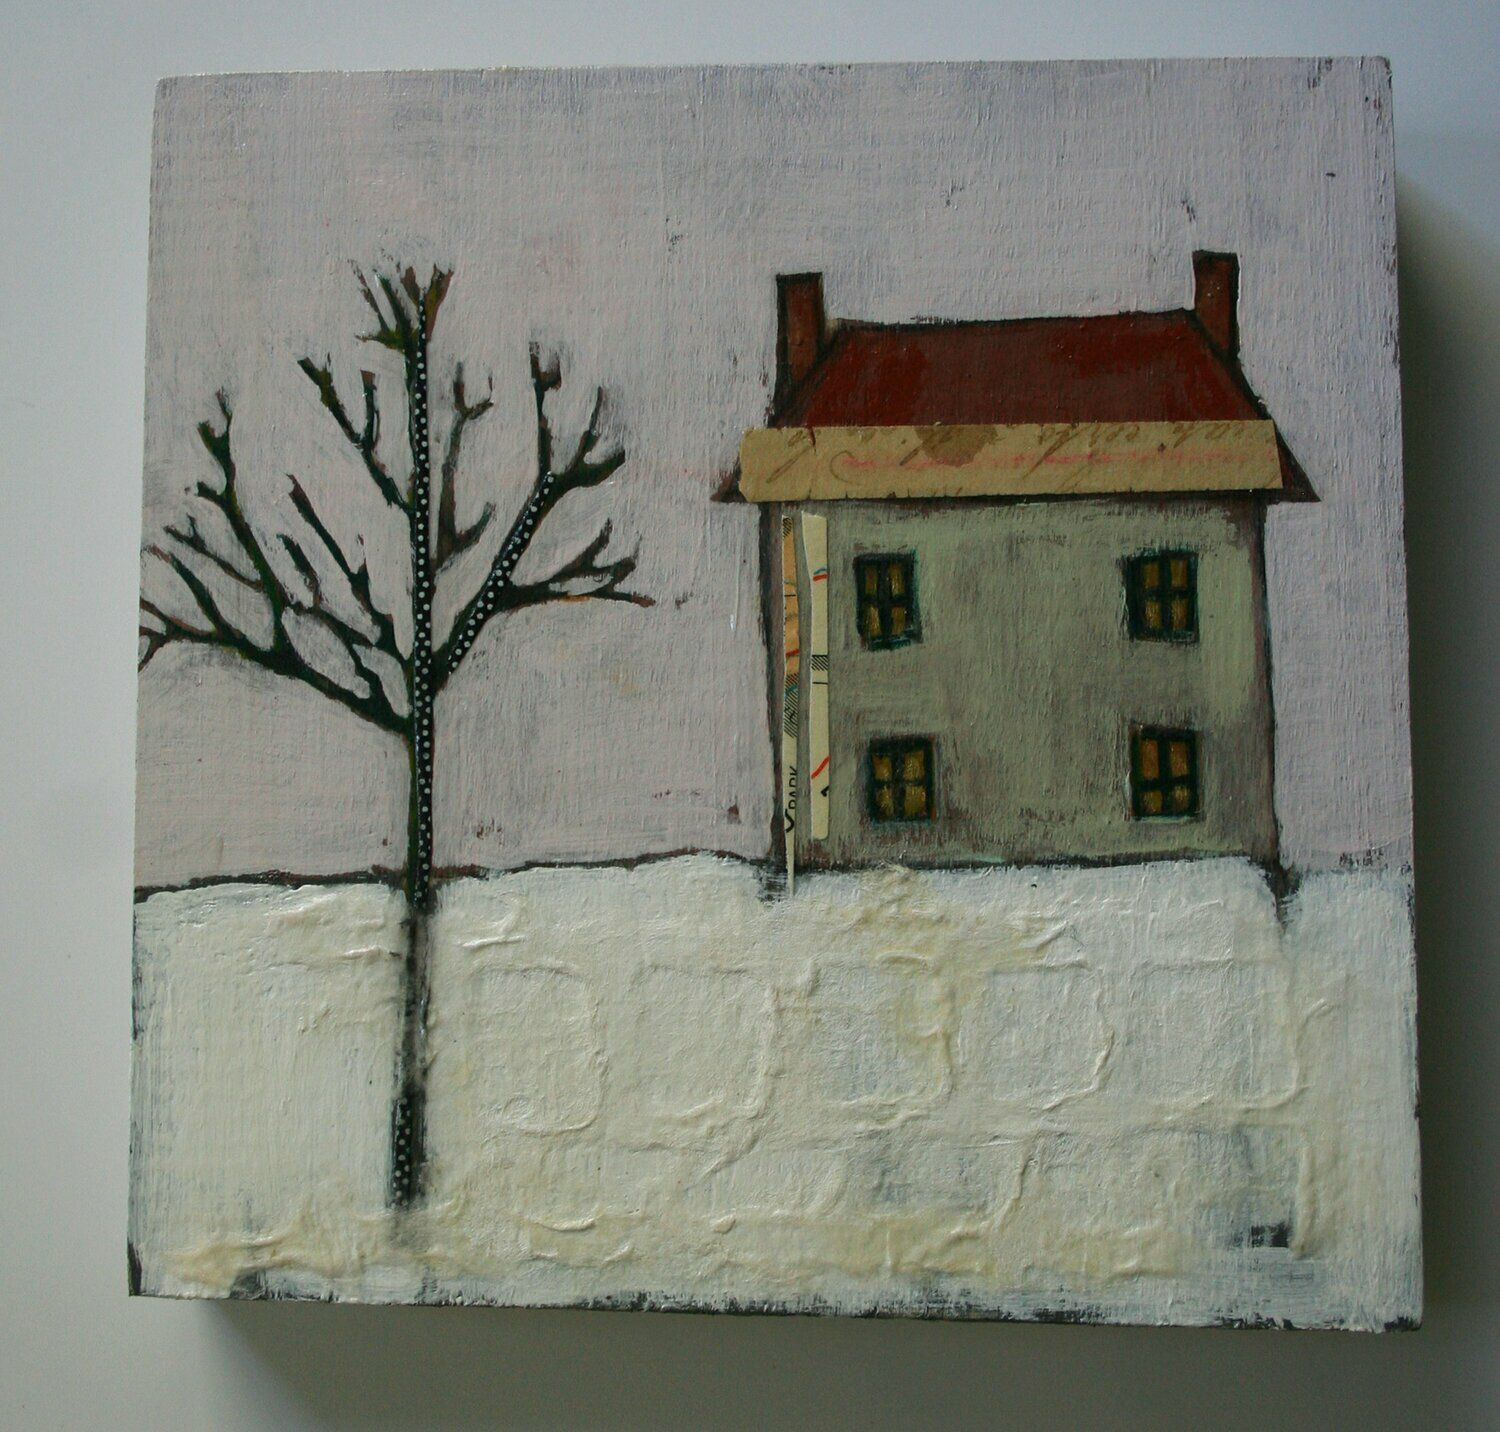 house in snowy landscape painting original a2n2koon wall art on reclaimed wood mixed media winter scene small art home in the snow artwork